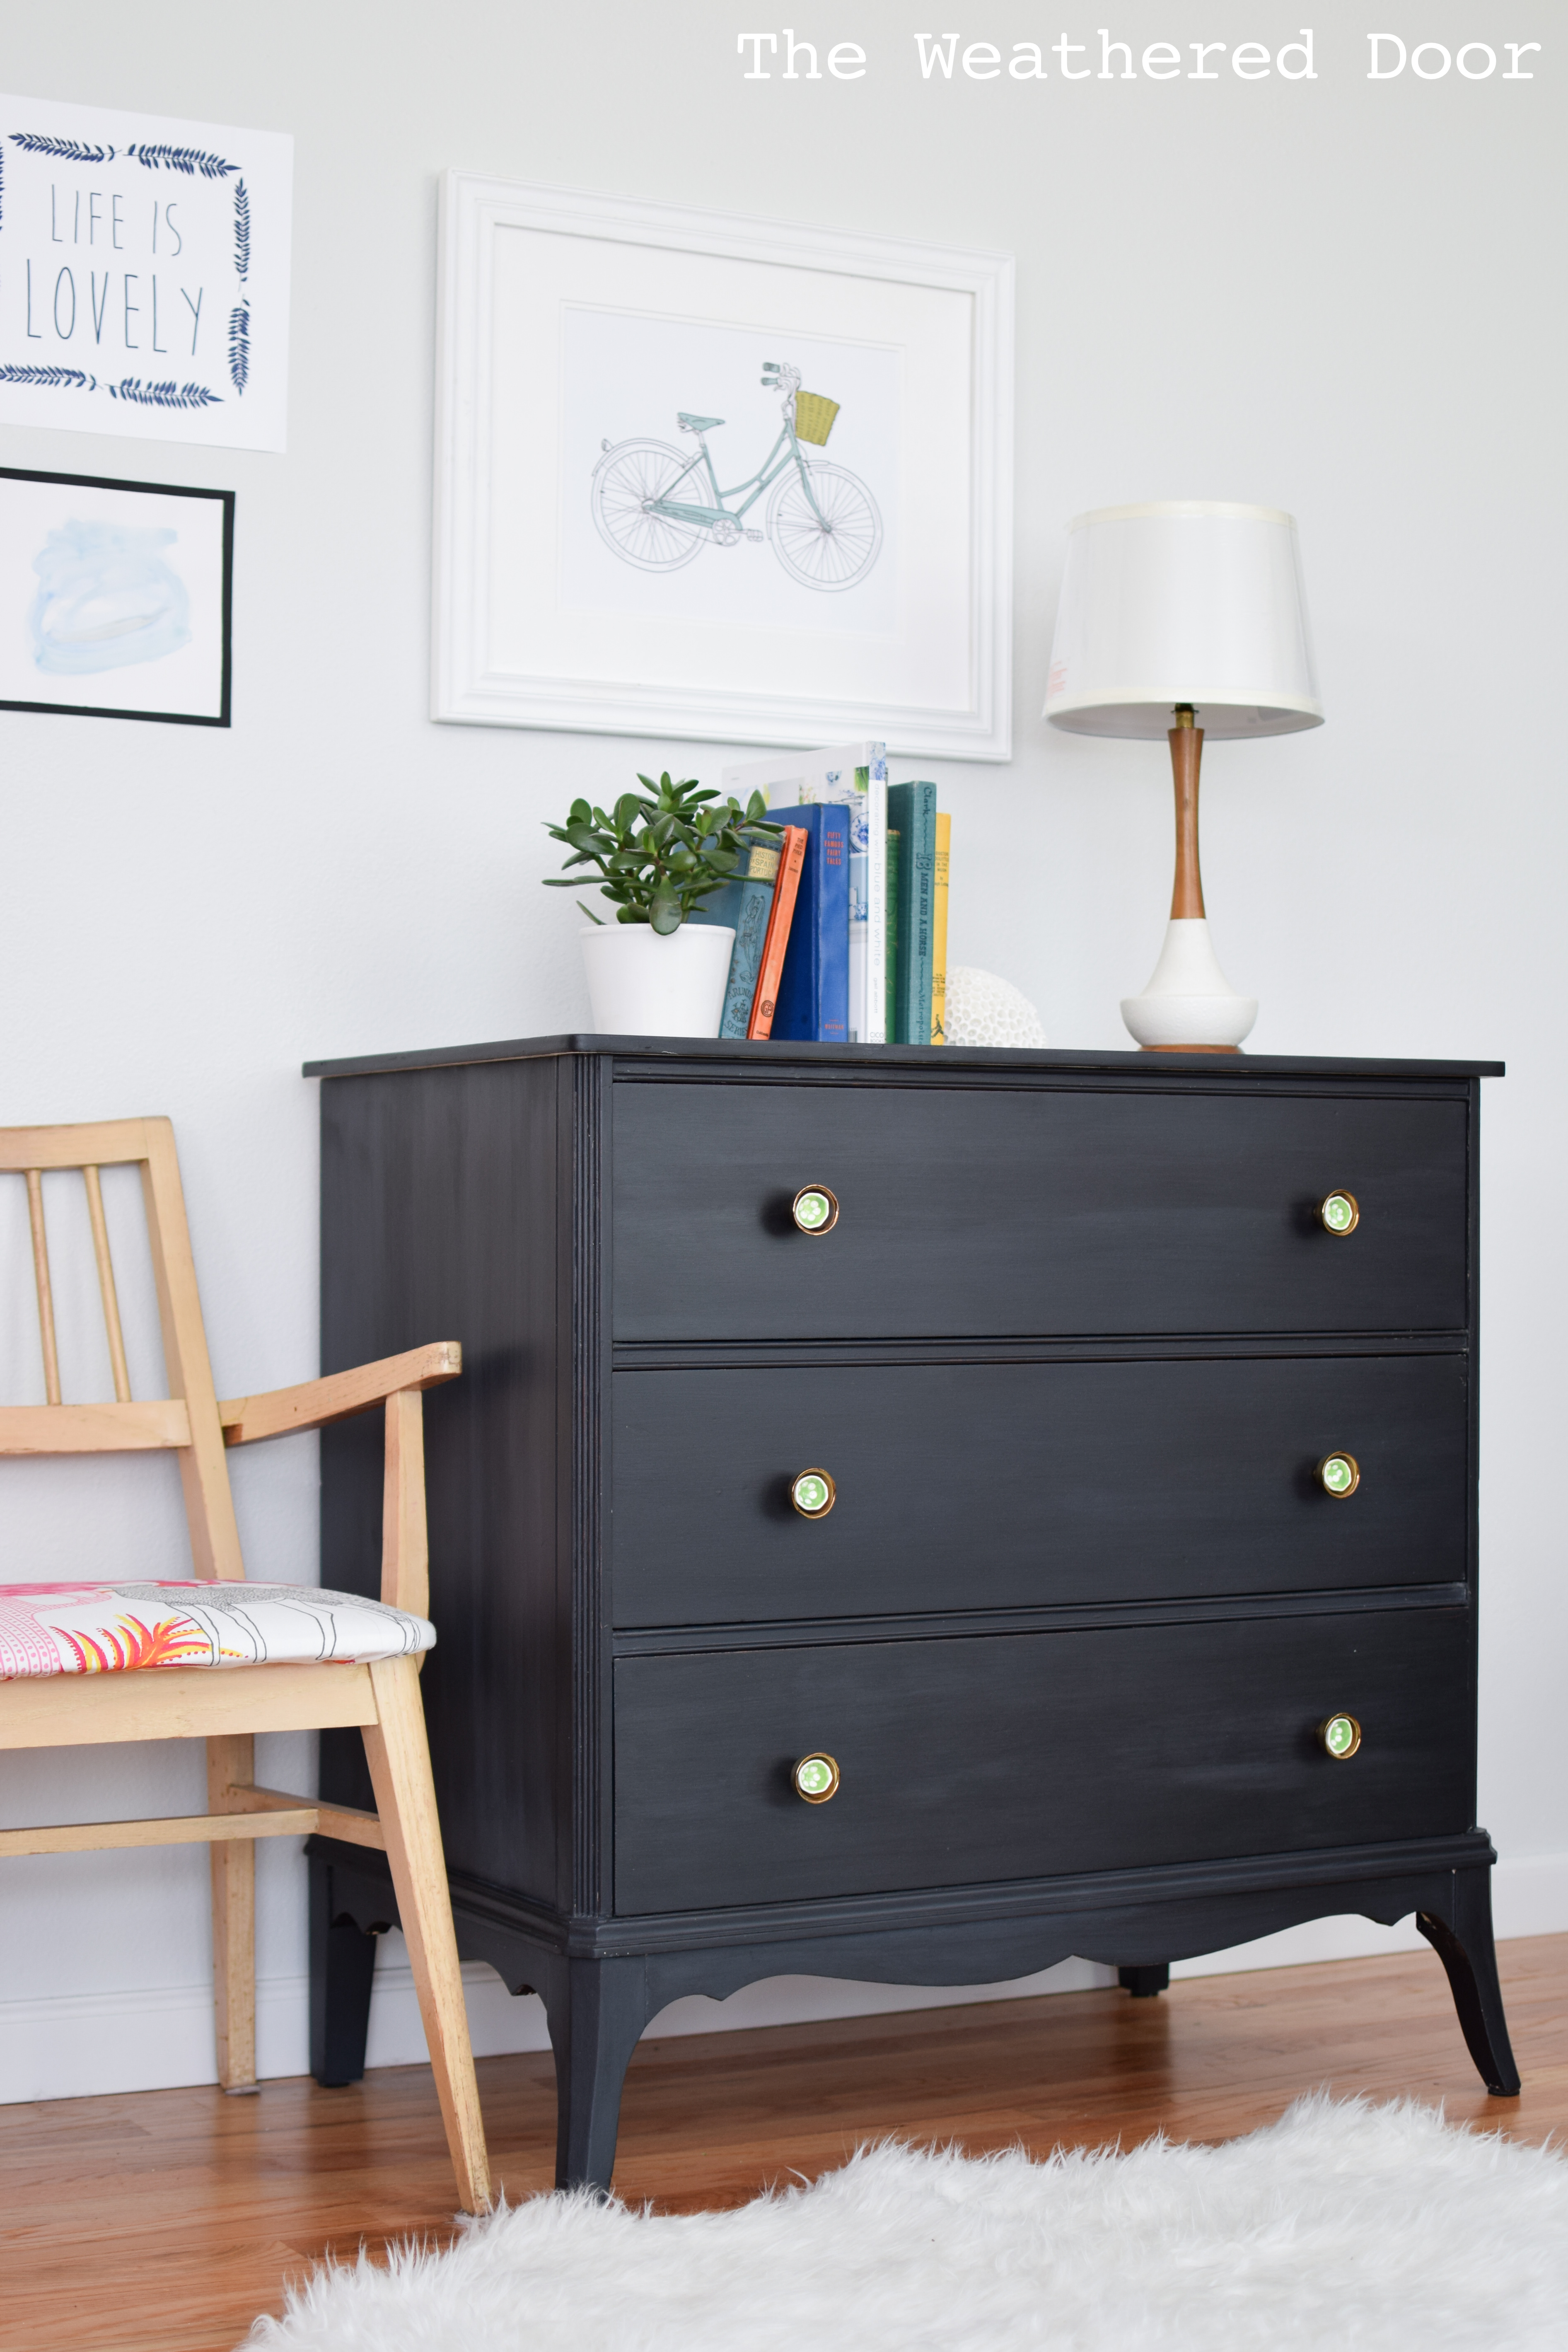 3 Drawer Black Dresser Bestdressers 2019